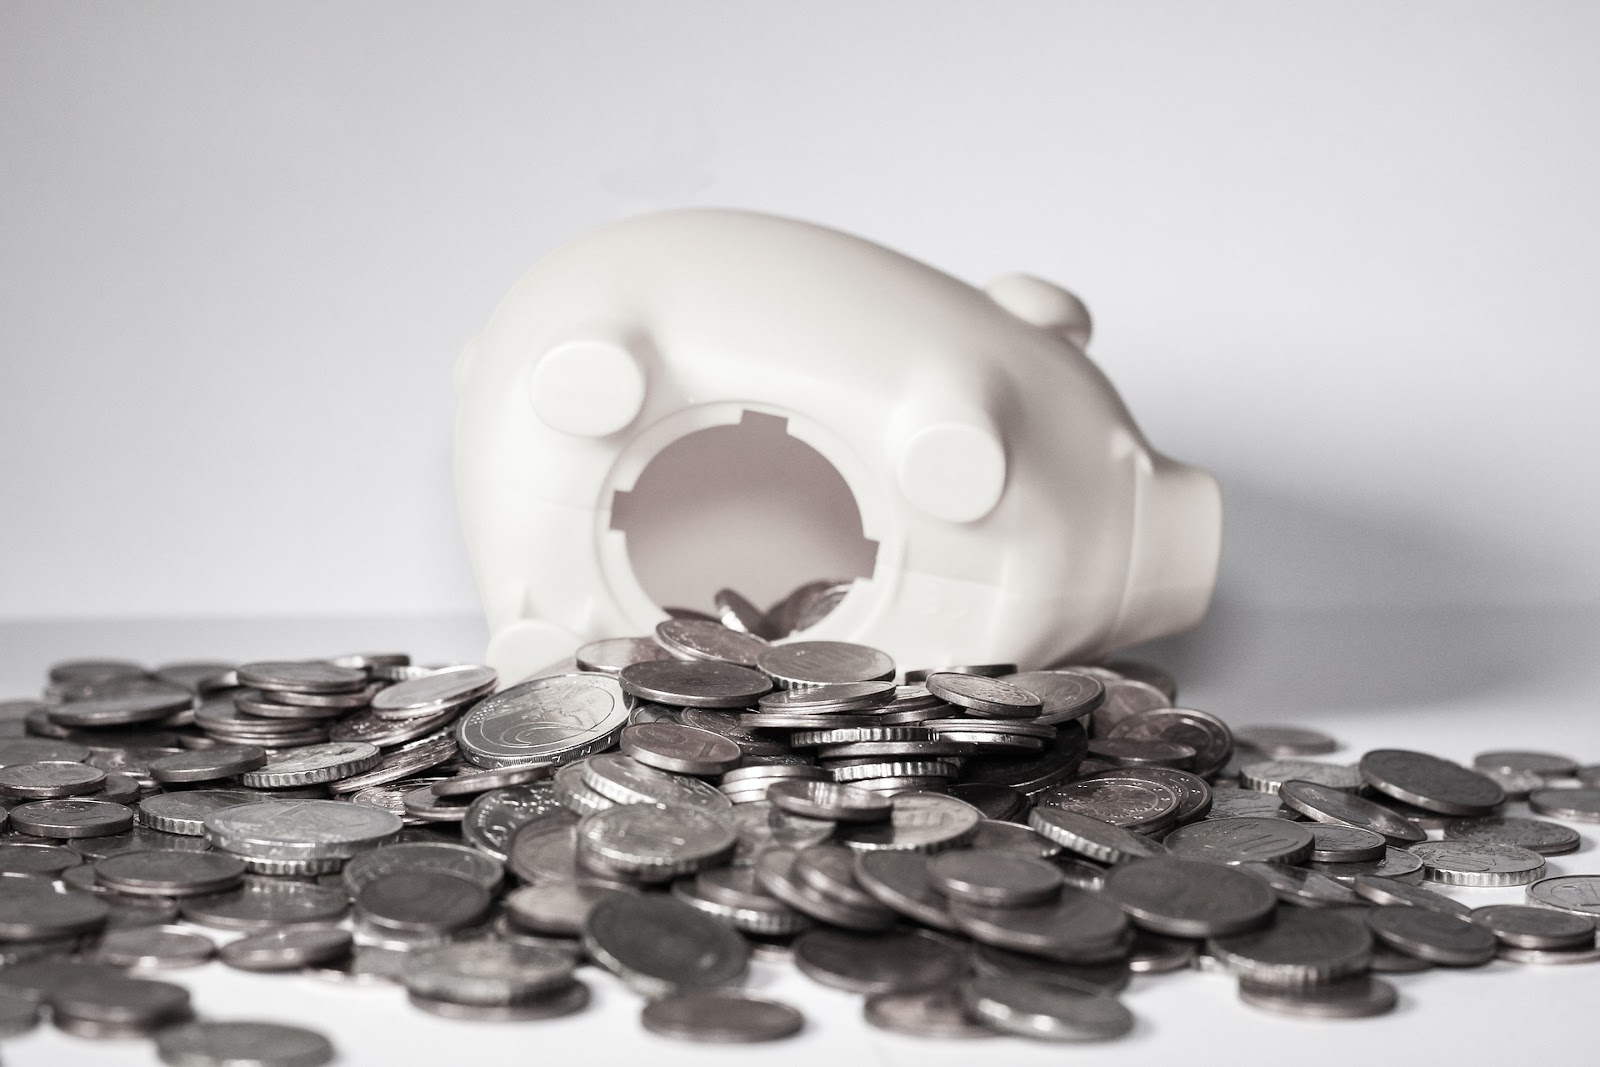 piggy bank with money spilling out